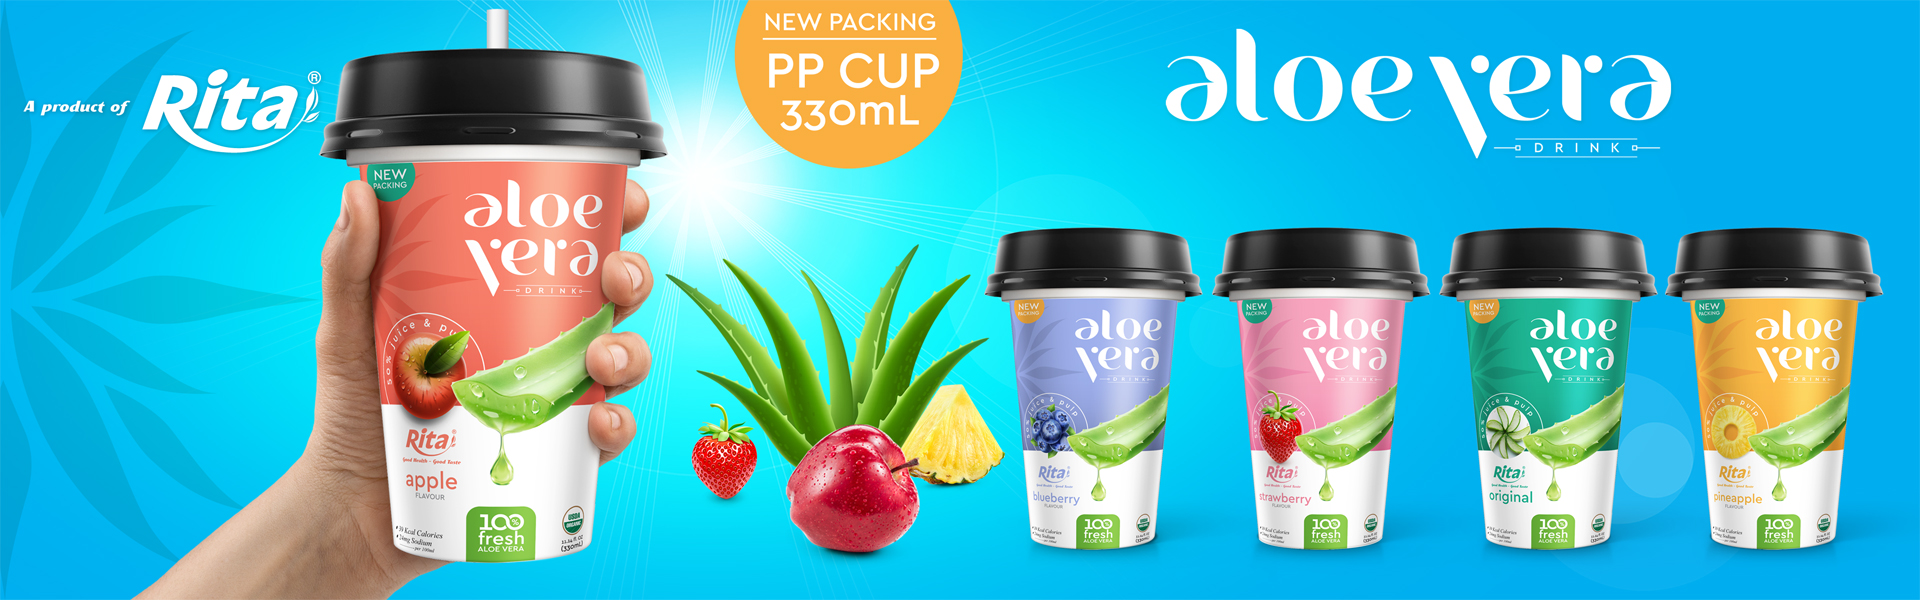 aloe vera with strawberry